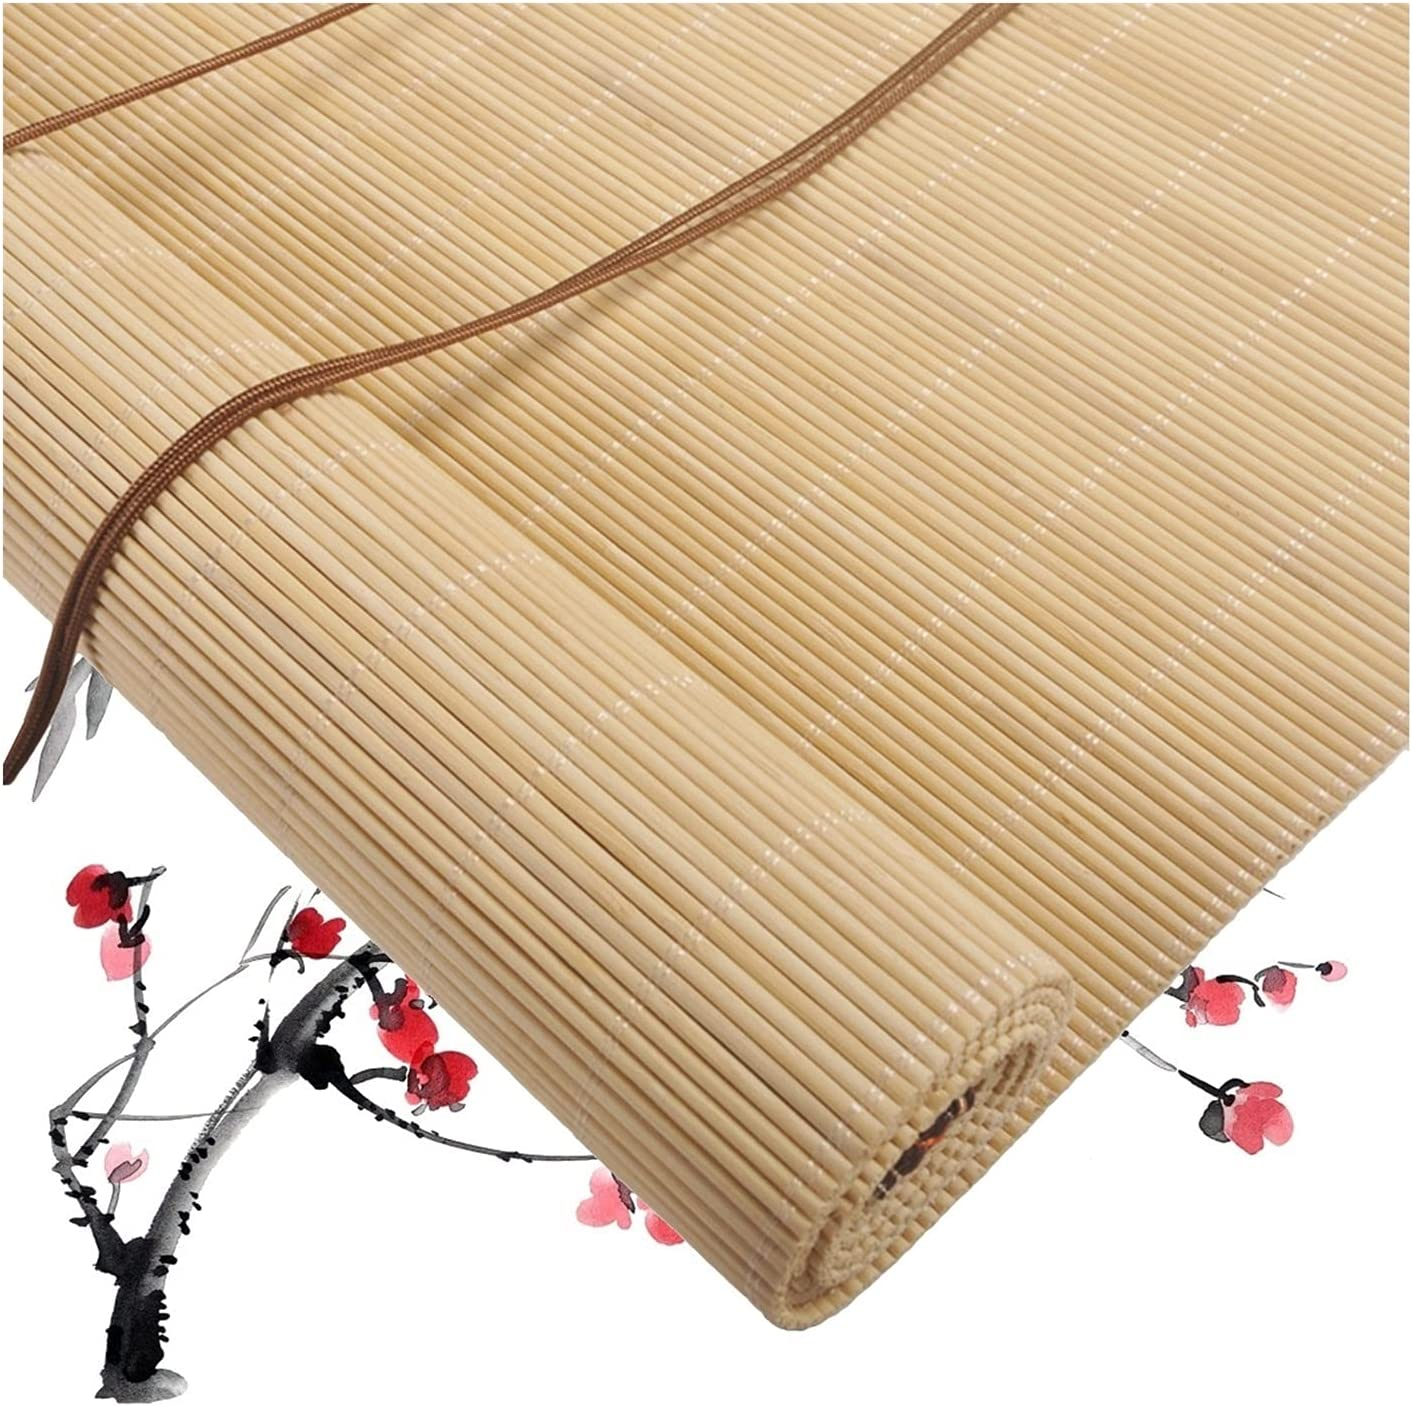 LM-Coat rack XINGLL Natural Max 54% OFF Bamboo Roller Spasm price Dustproof Home Blinds